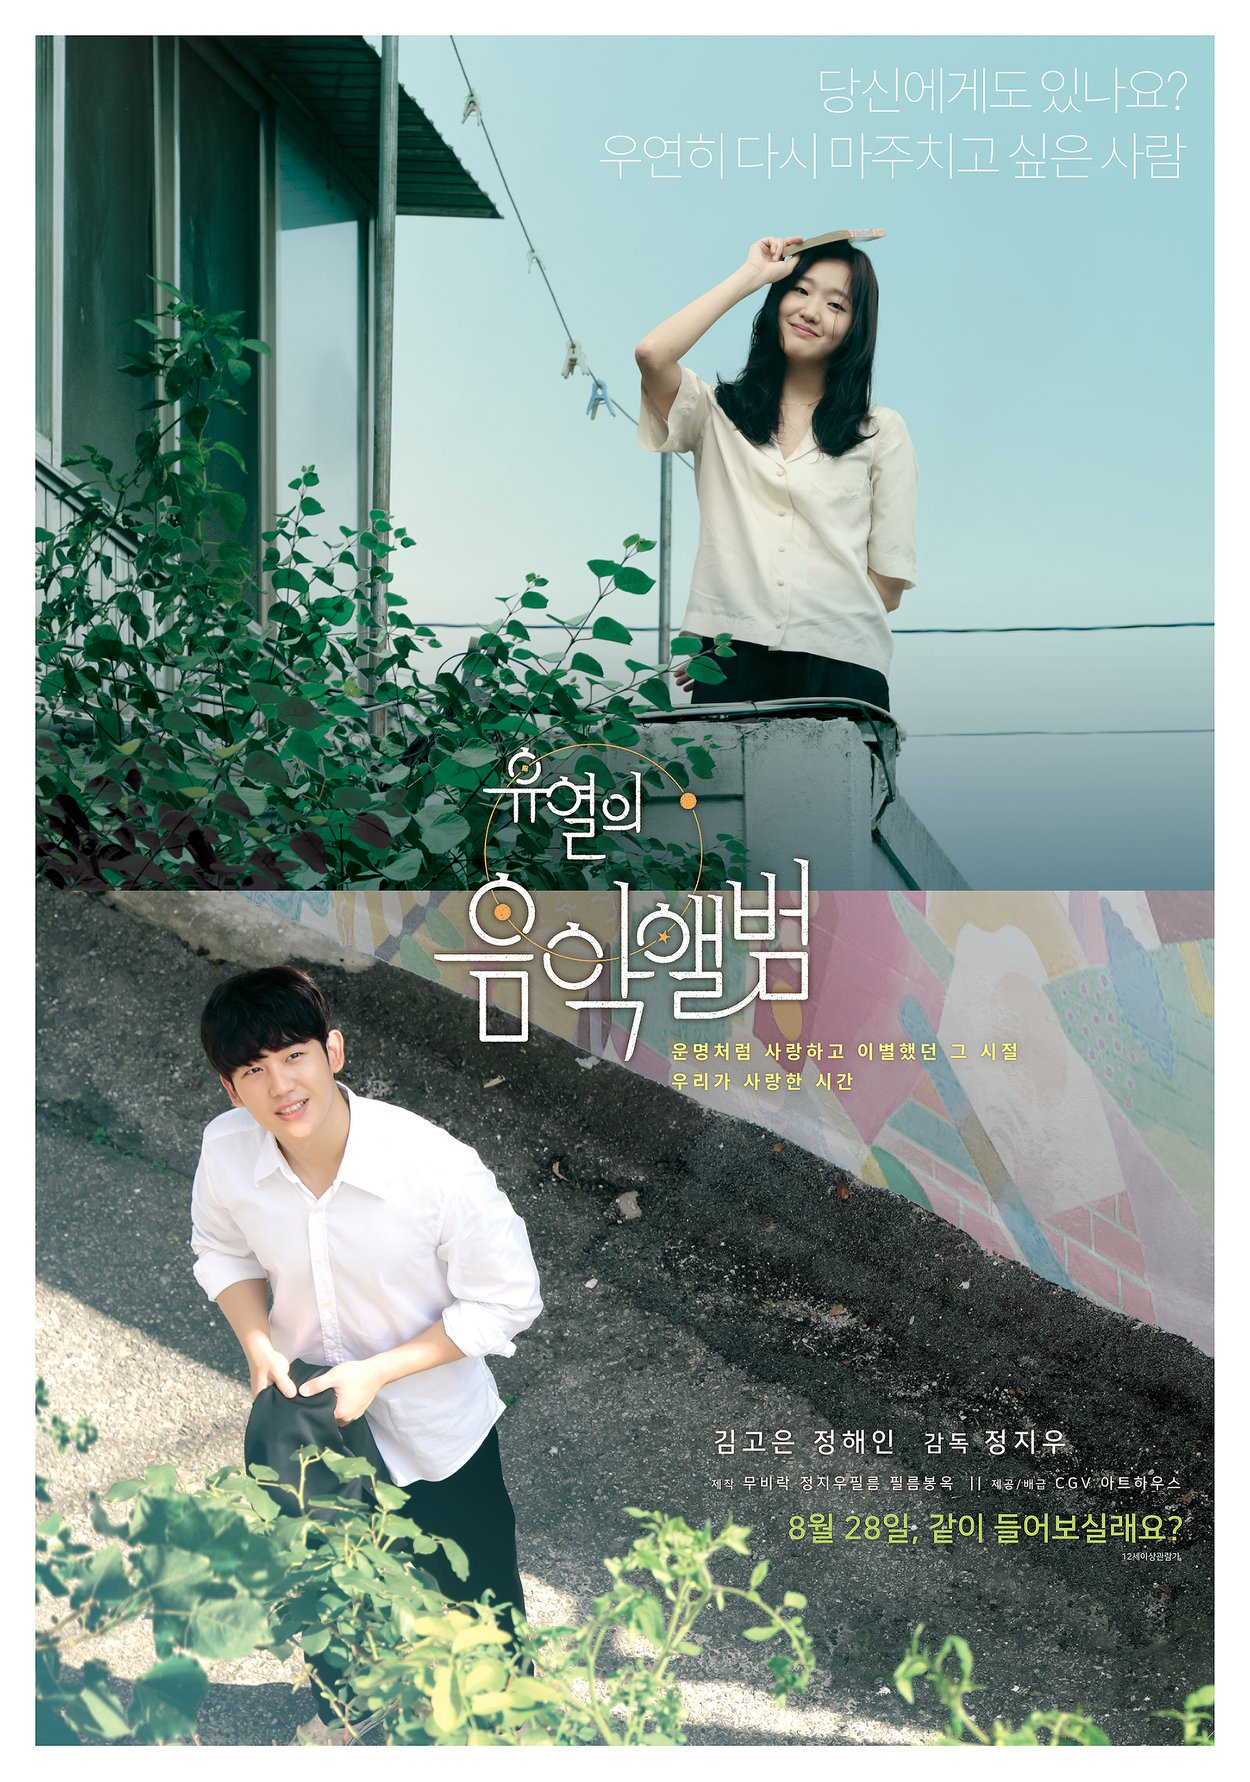 Tune In For Love : Watch:, Separate, Reunite, Trailer, Upcoming, About, Longing, Soompi